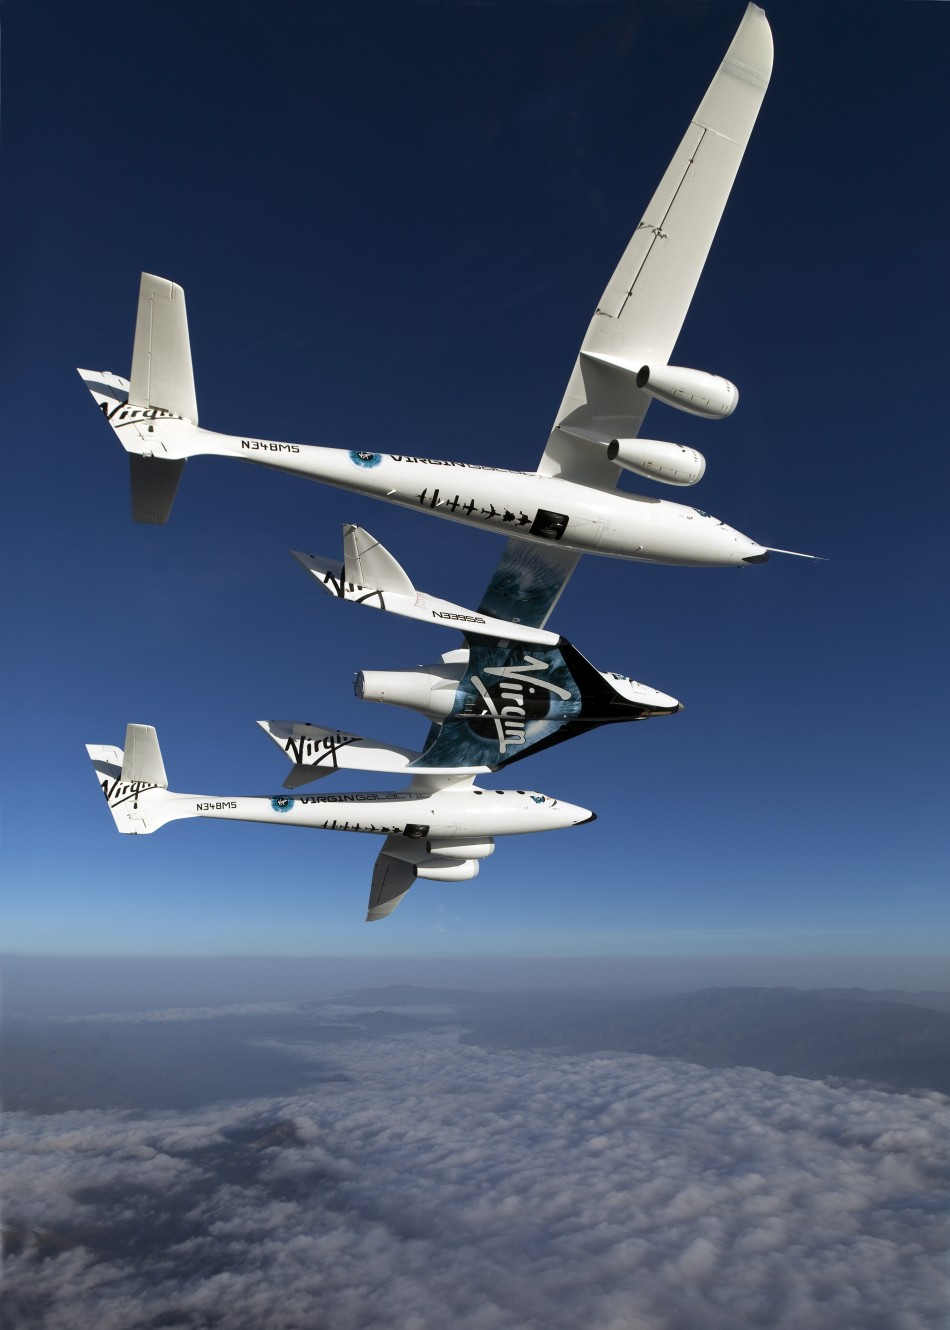 Commercial Suborbital Spacecrafts Estimated to be £1.03 Billion Industry